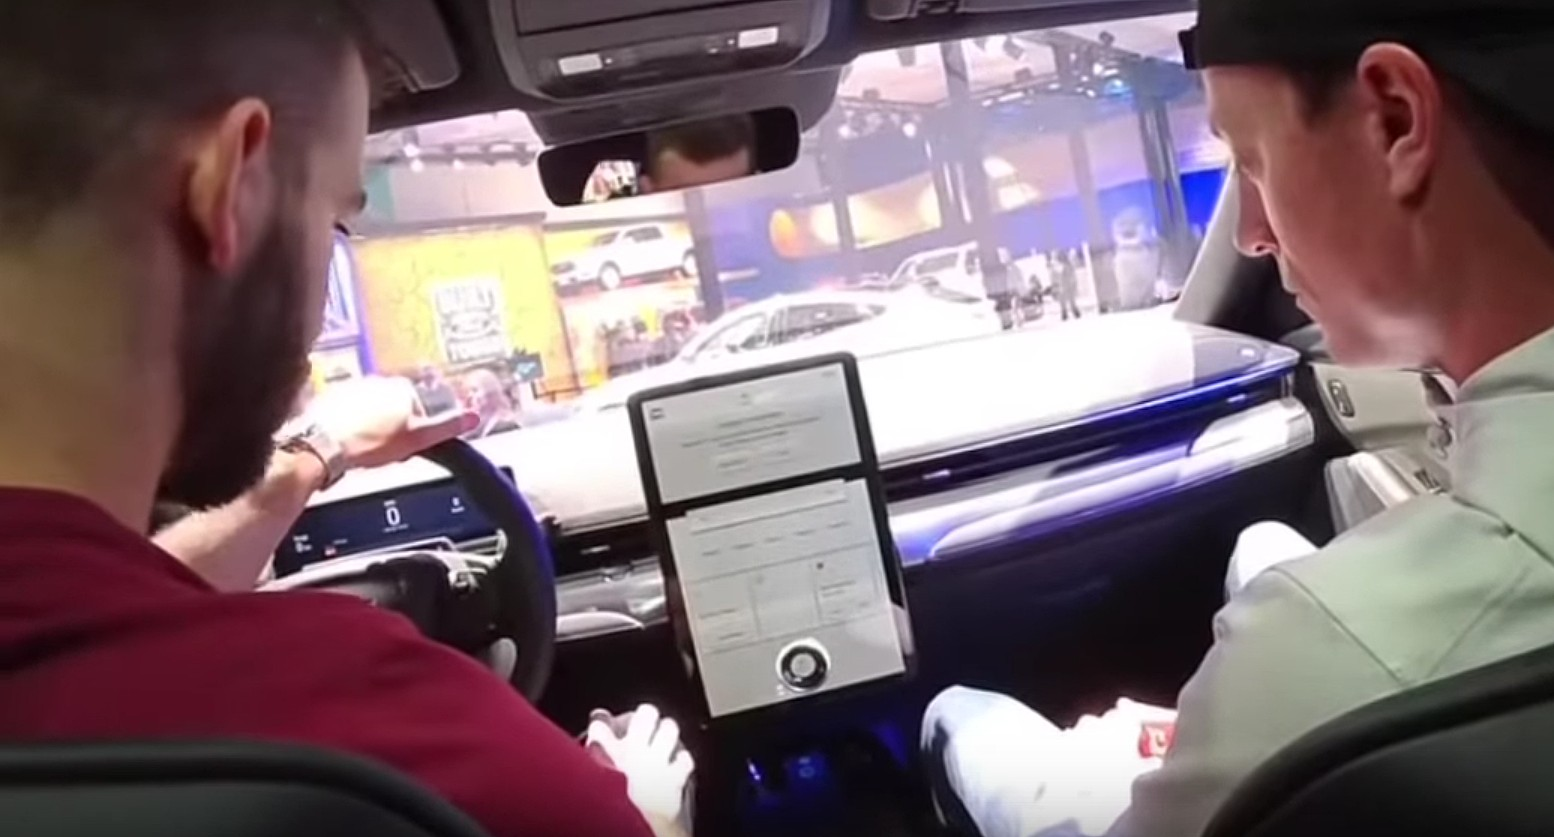 Ford Mach E Touchscreen Demo Only Highlights Tesla S Stark Lead In User Experience